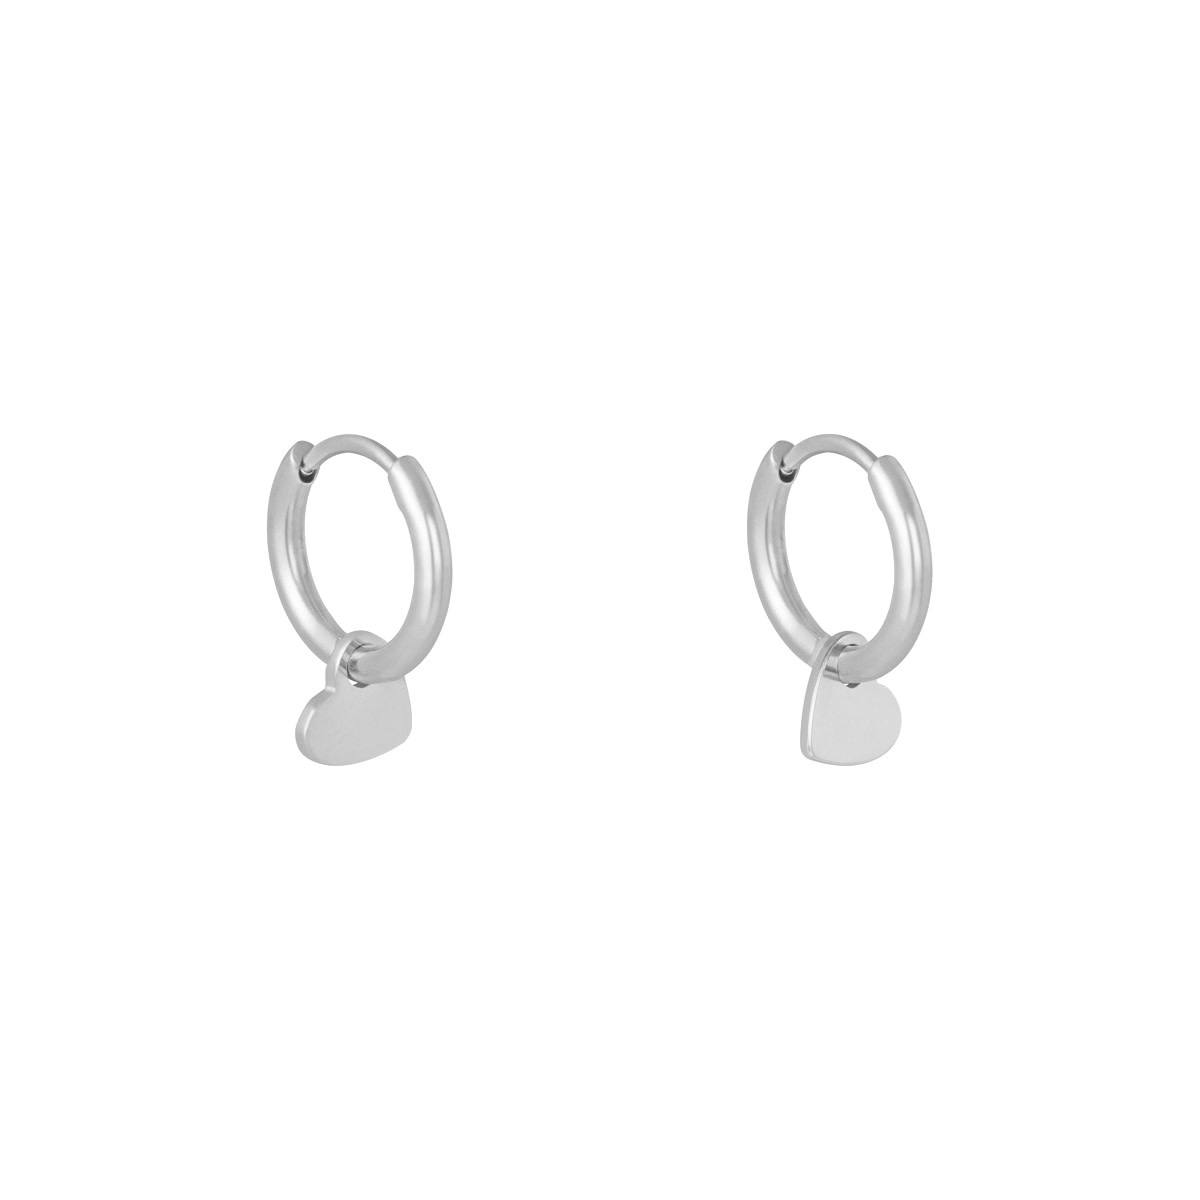 With love Earrings lonely heart club silver